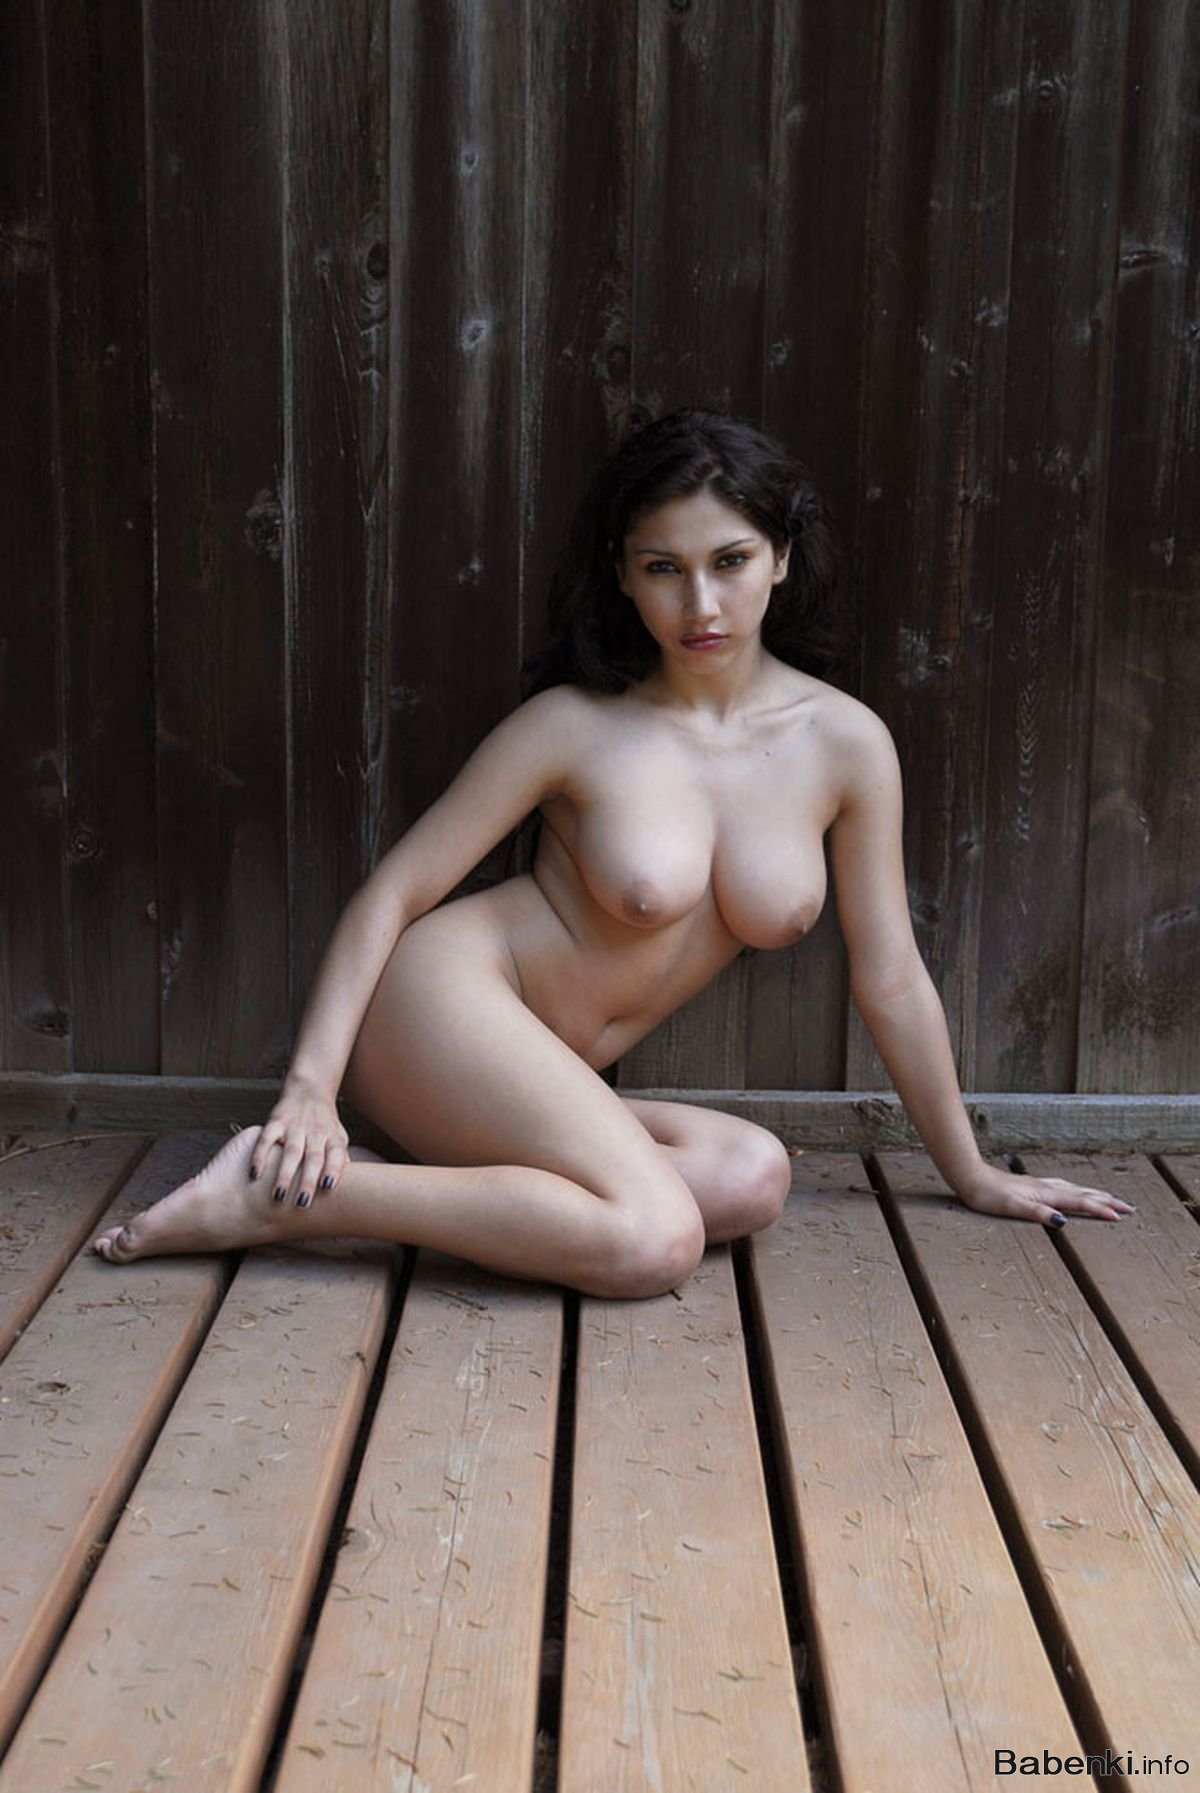 Persians naked beauties sexy images